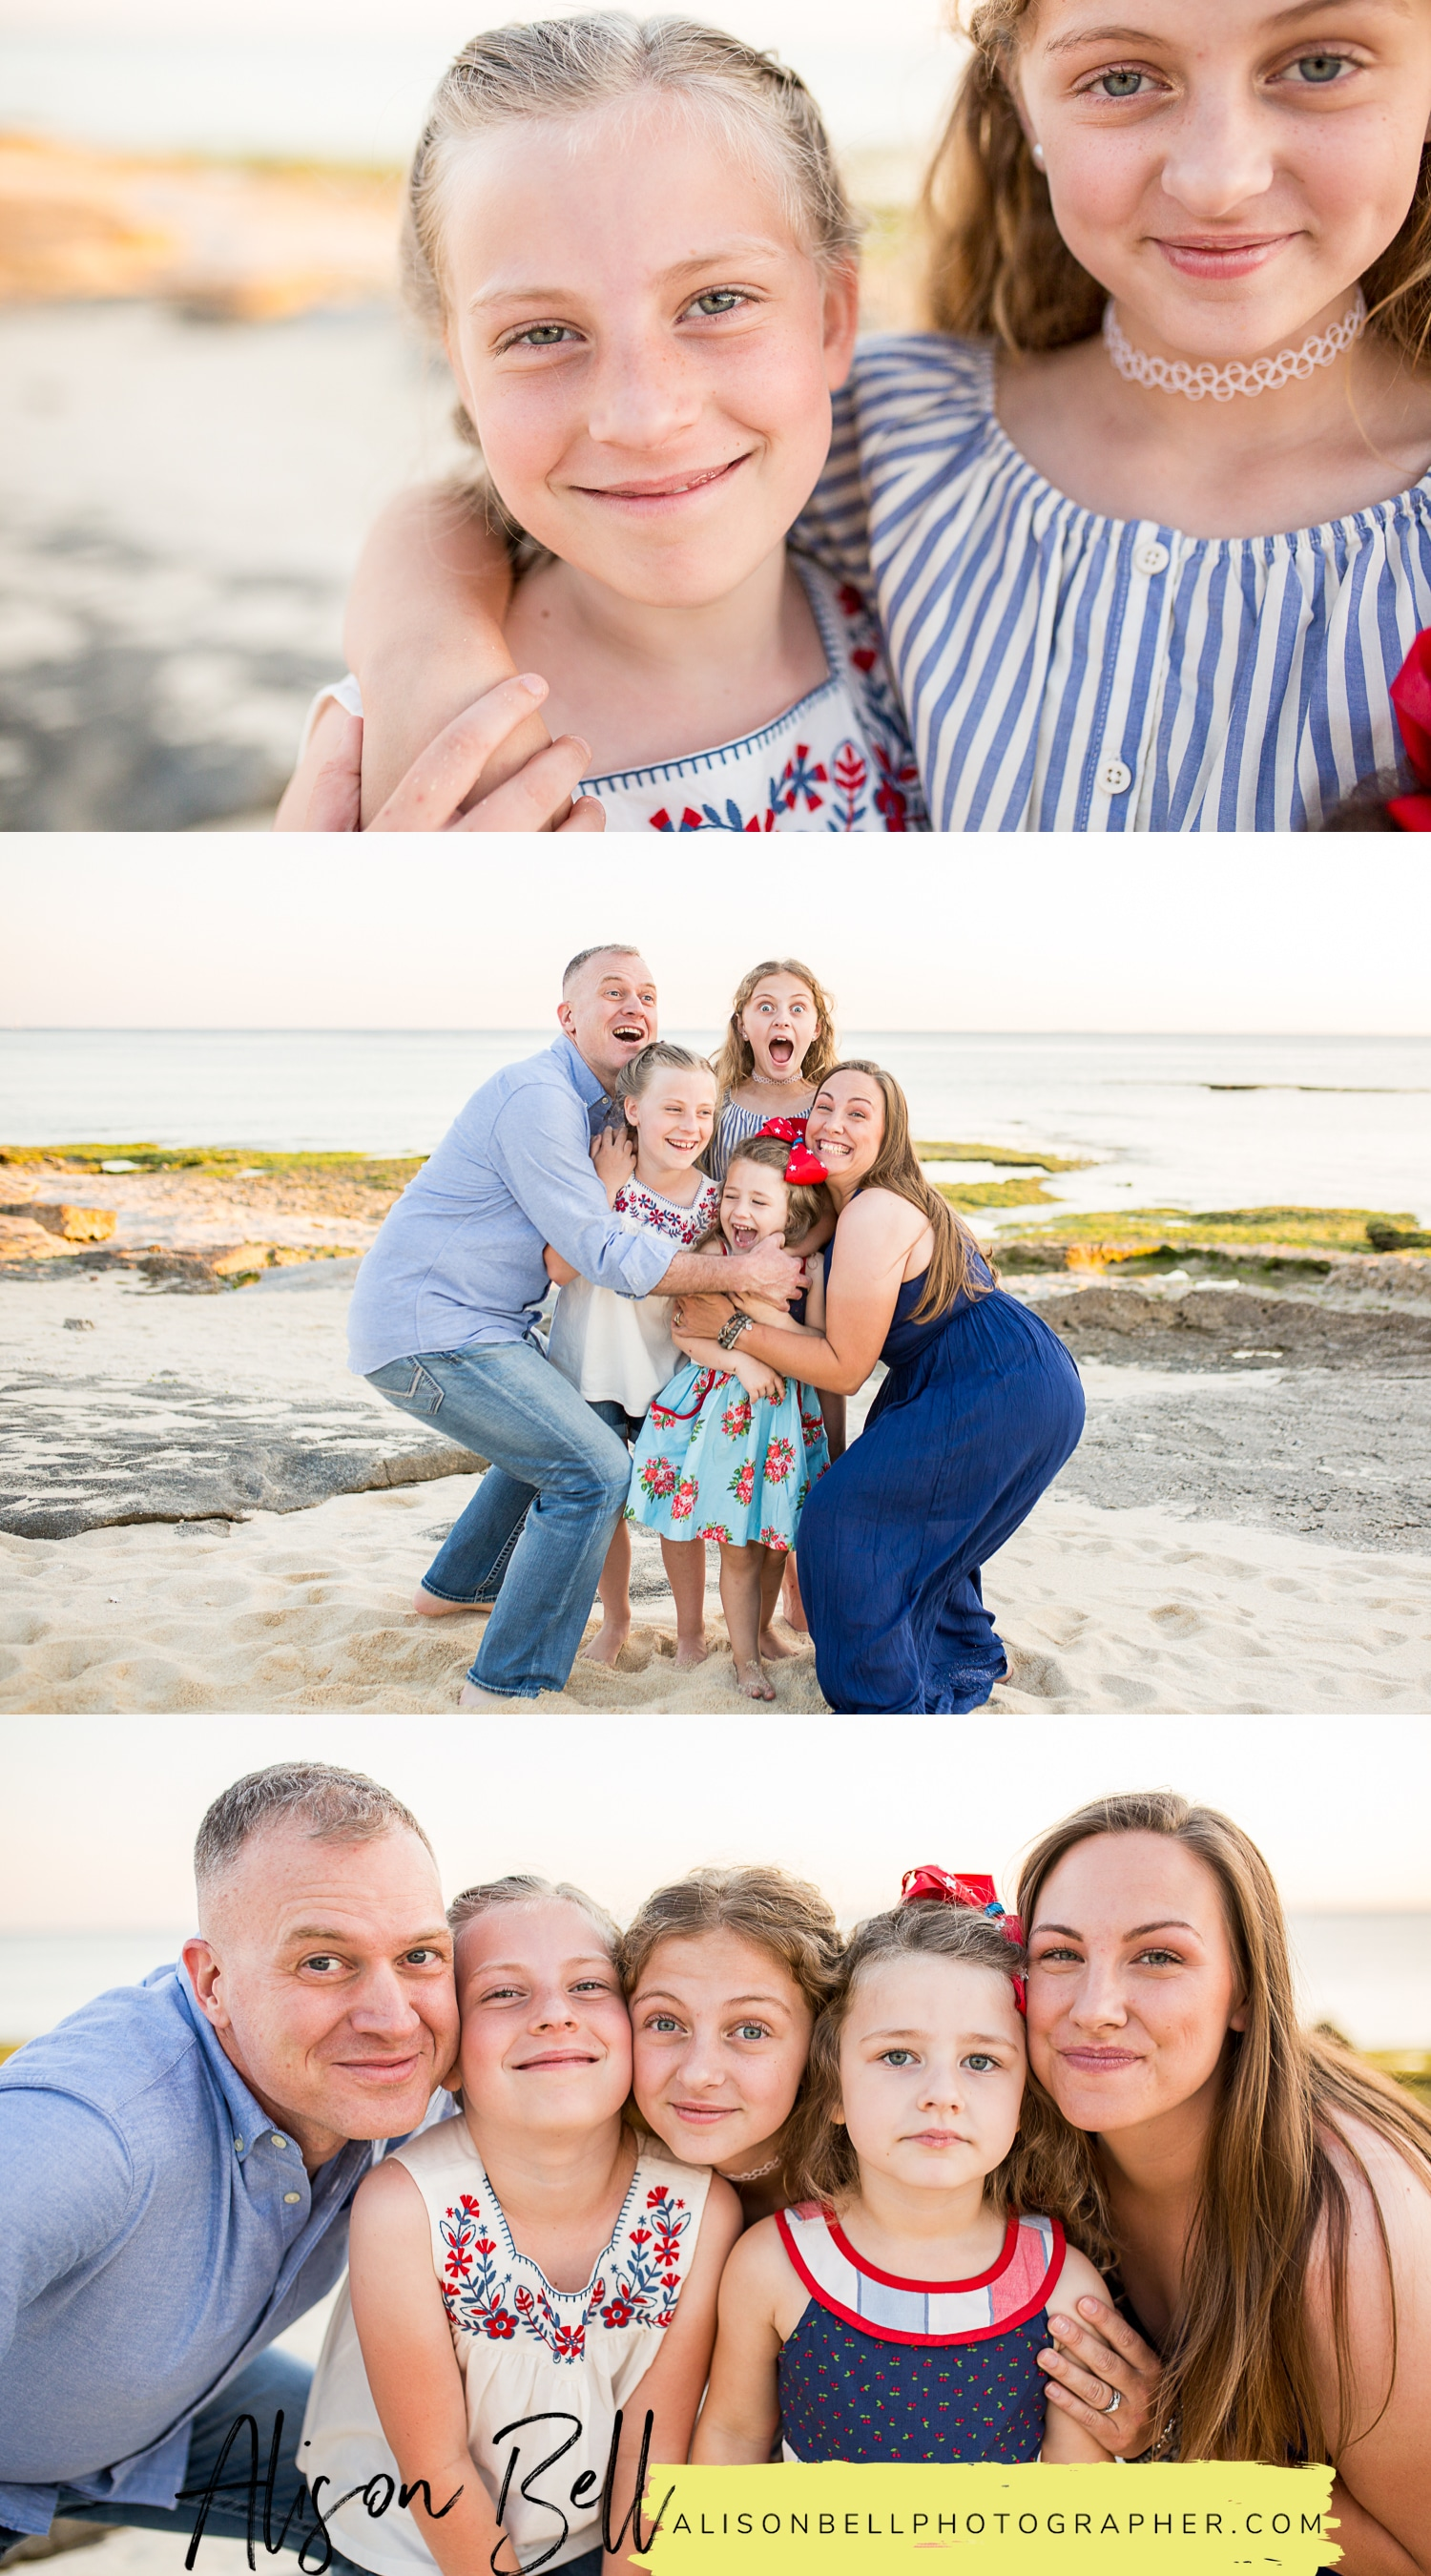 Half Priced Mini Sessions by Family Photographer Alison Bell, Photographer. Alisonbellphotographer.com